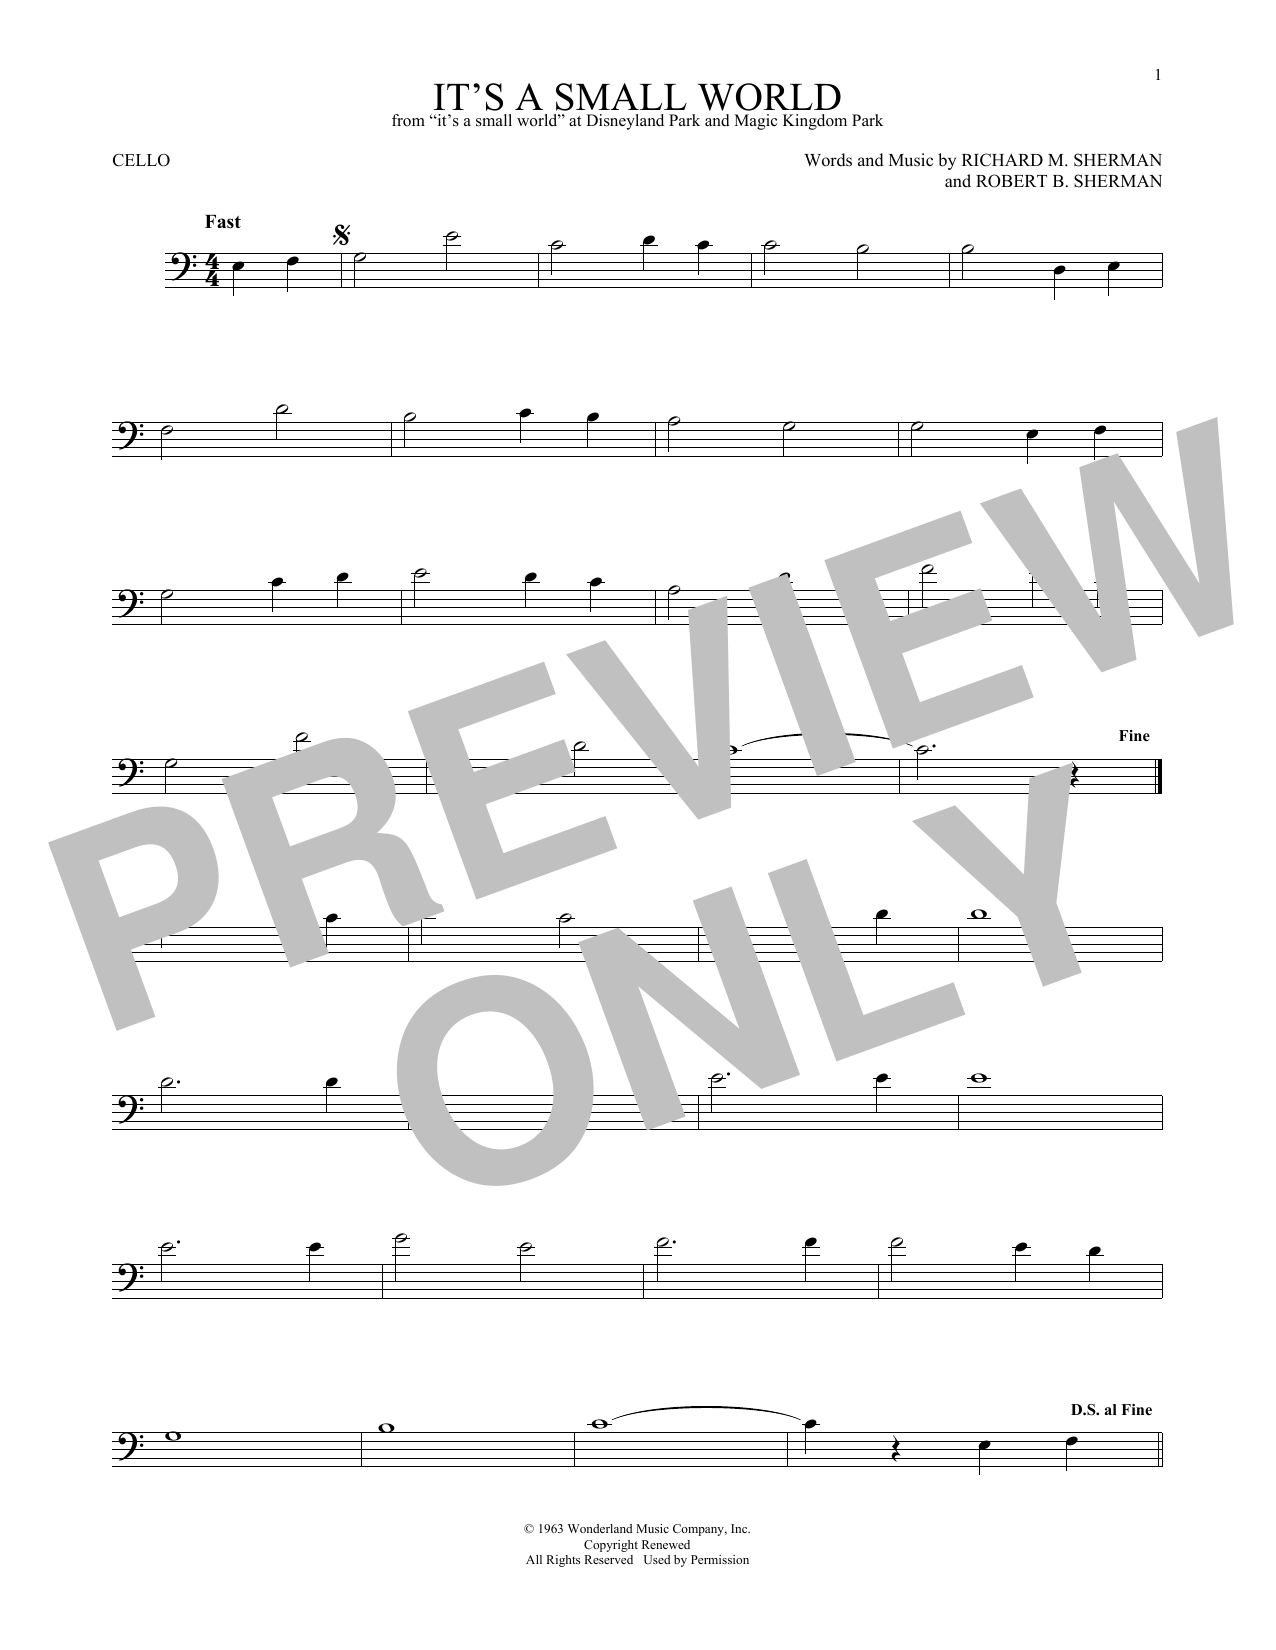 Richard & Robert Sherman It's A Small World sheet music notes and chords